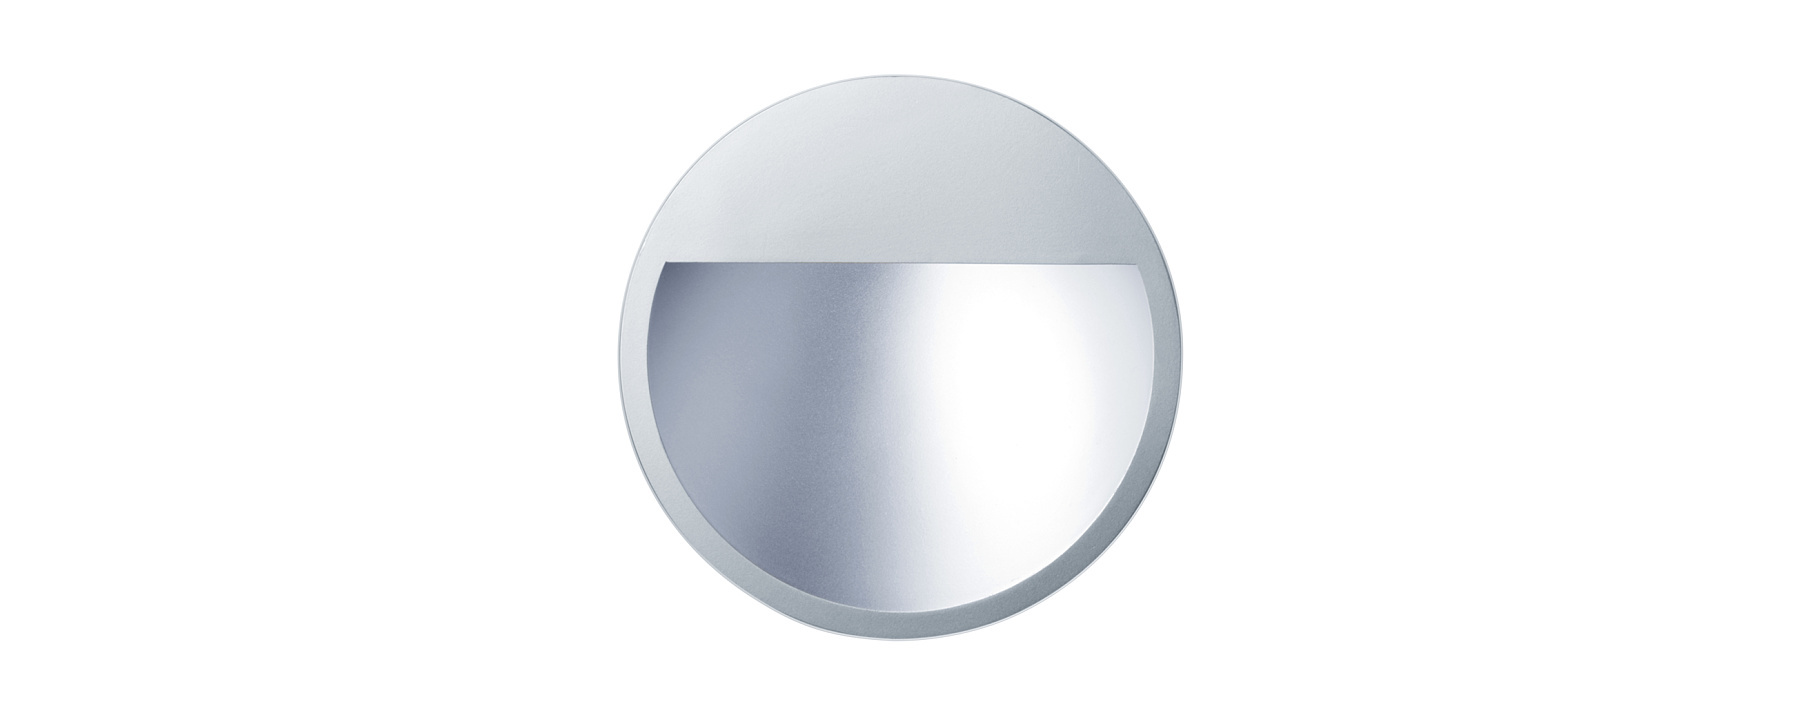 Floor washlights round - Wall-mounted luminaires